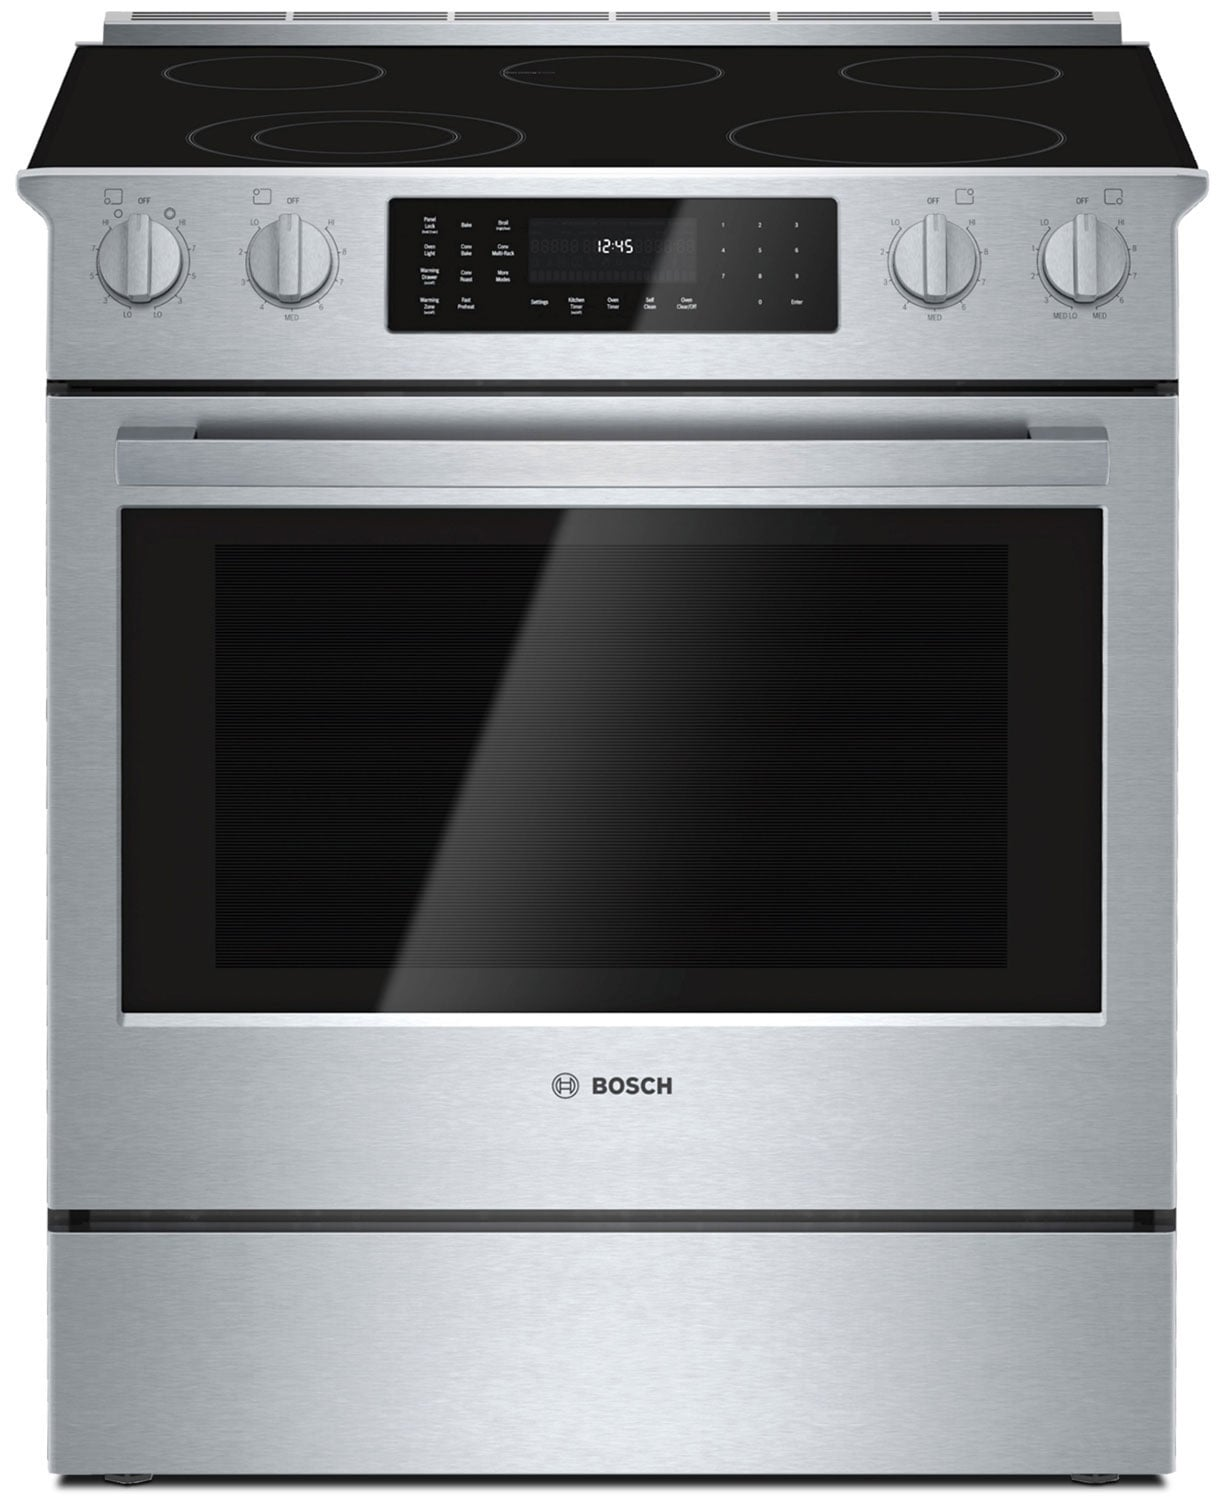 Cooking Products - Bosch Stainless Steel Slide-In Electric Convection Range (4.6 Cu. Ft.) - HEI8054C